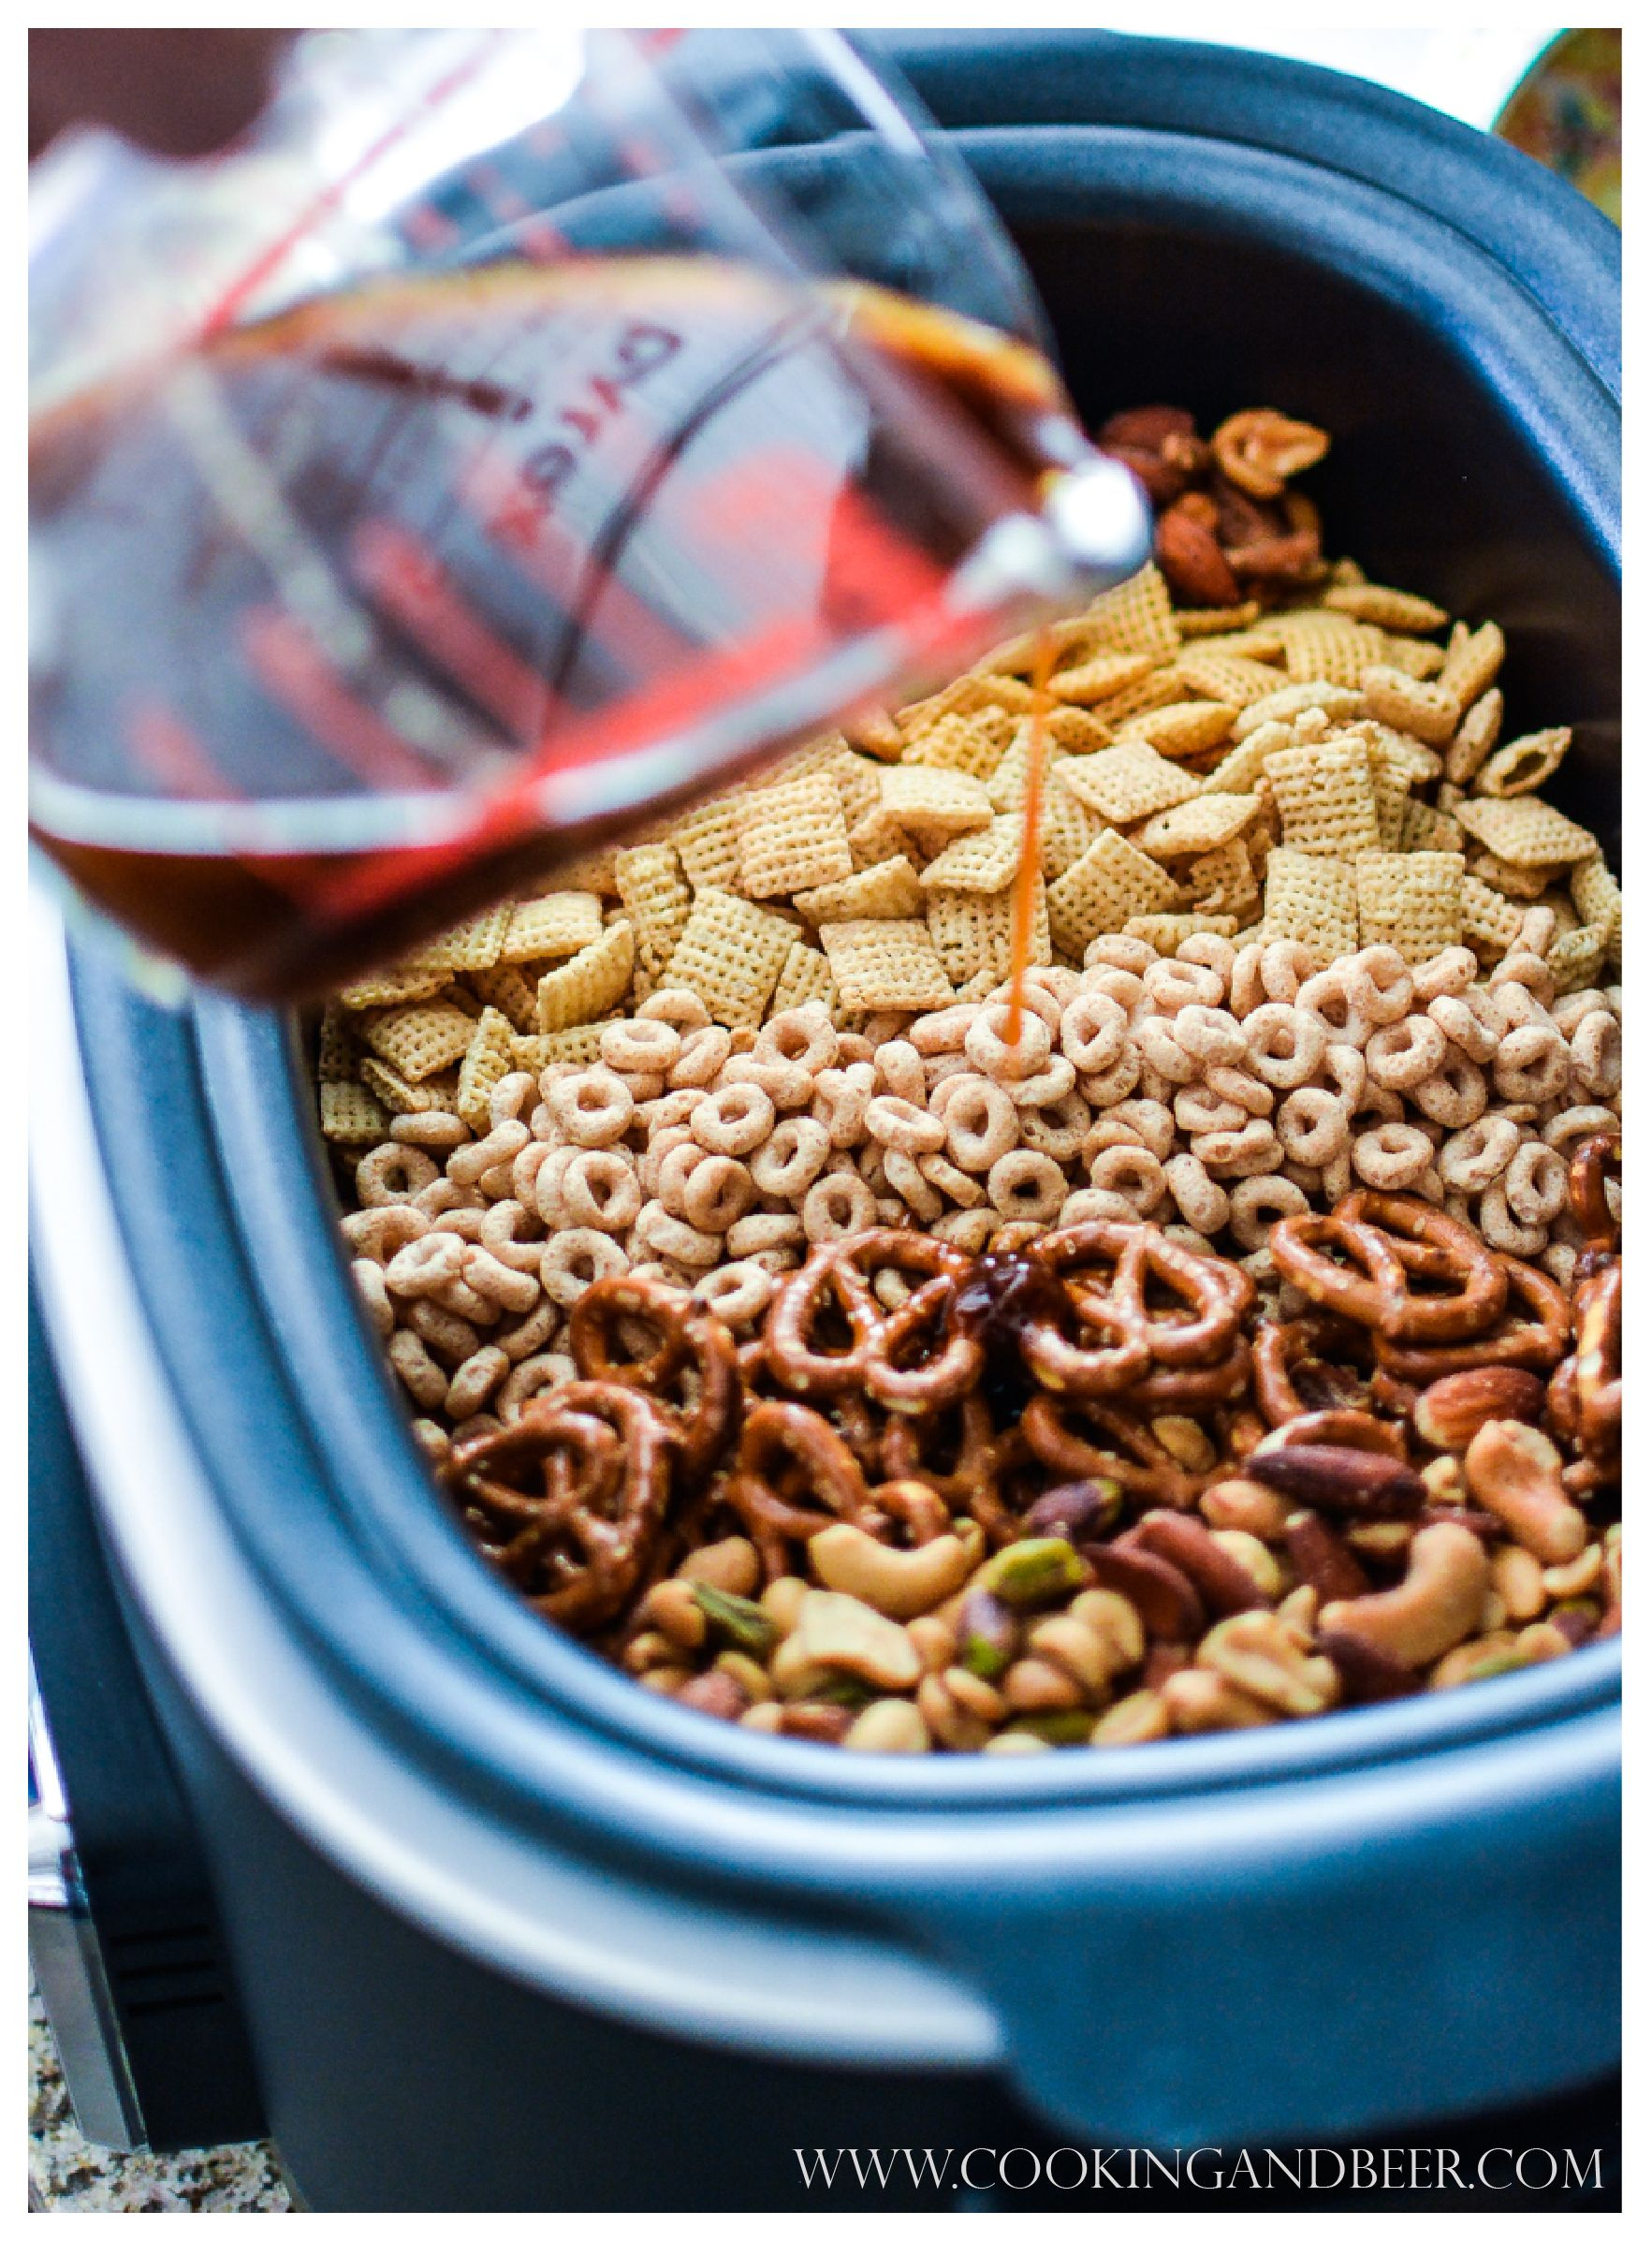 Winter Spice Slow Cooker Snack Mix